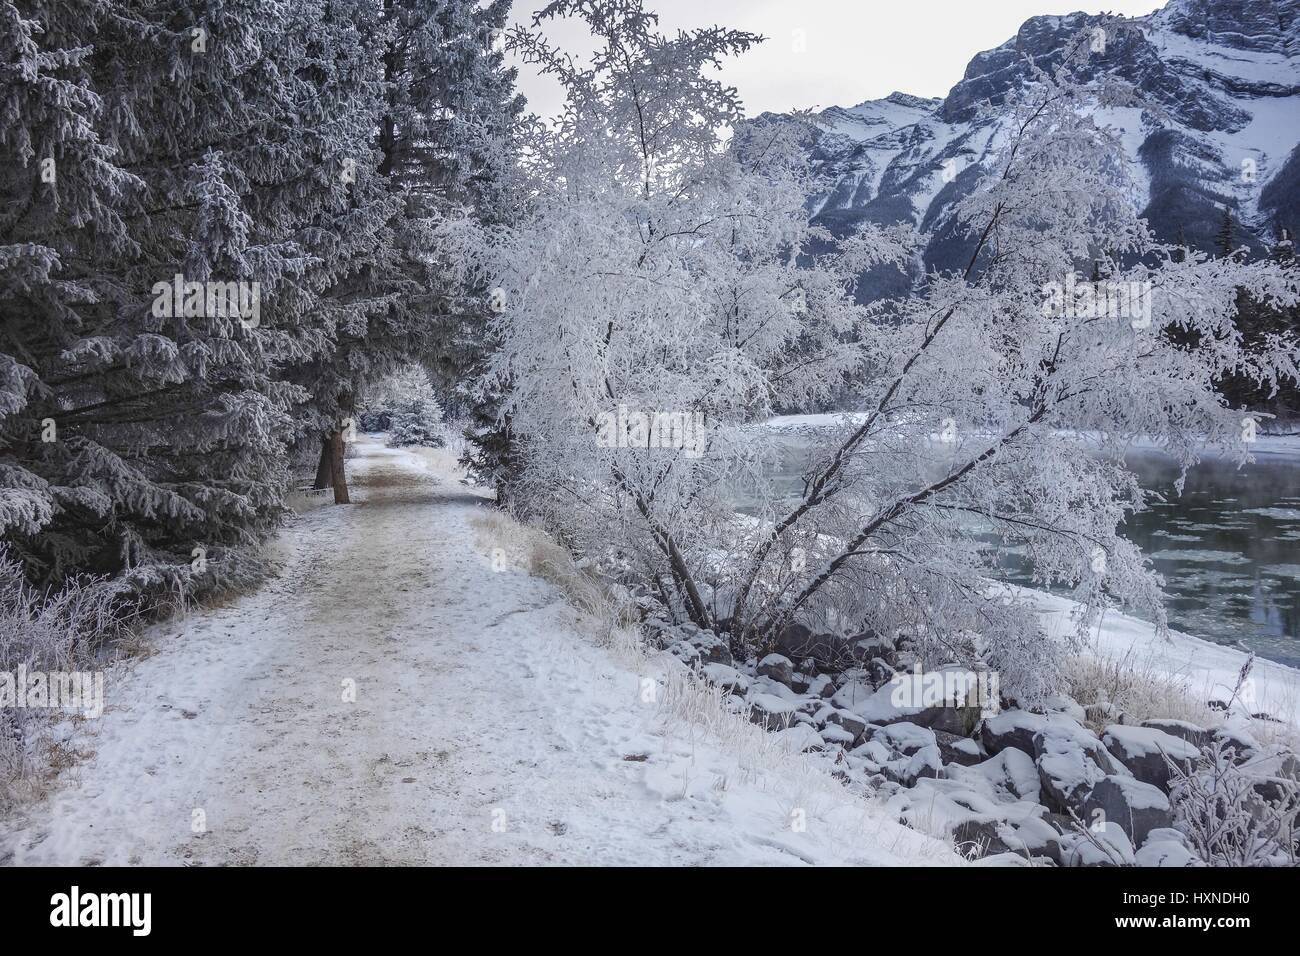 bow-river-walking-path-during-winter-in-